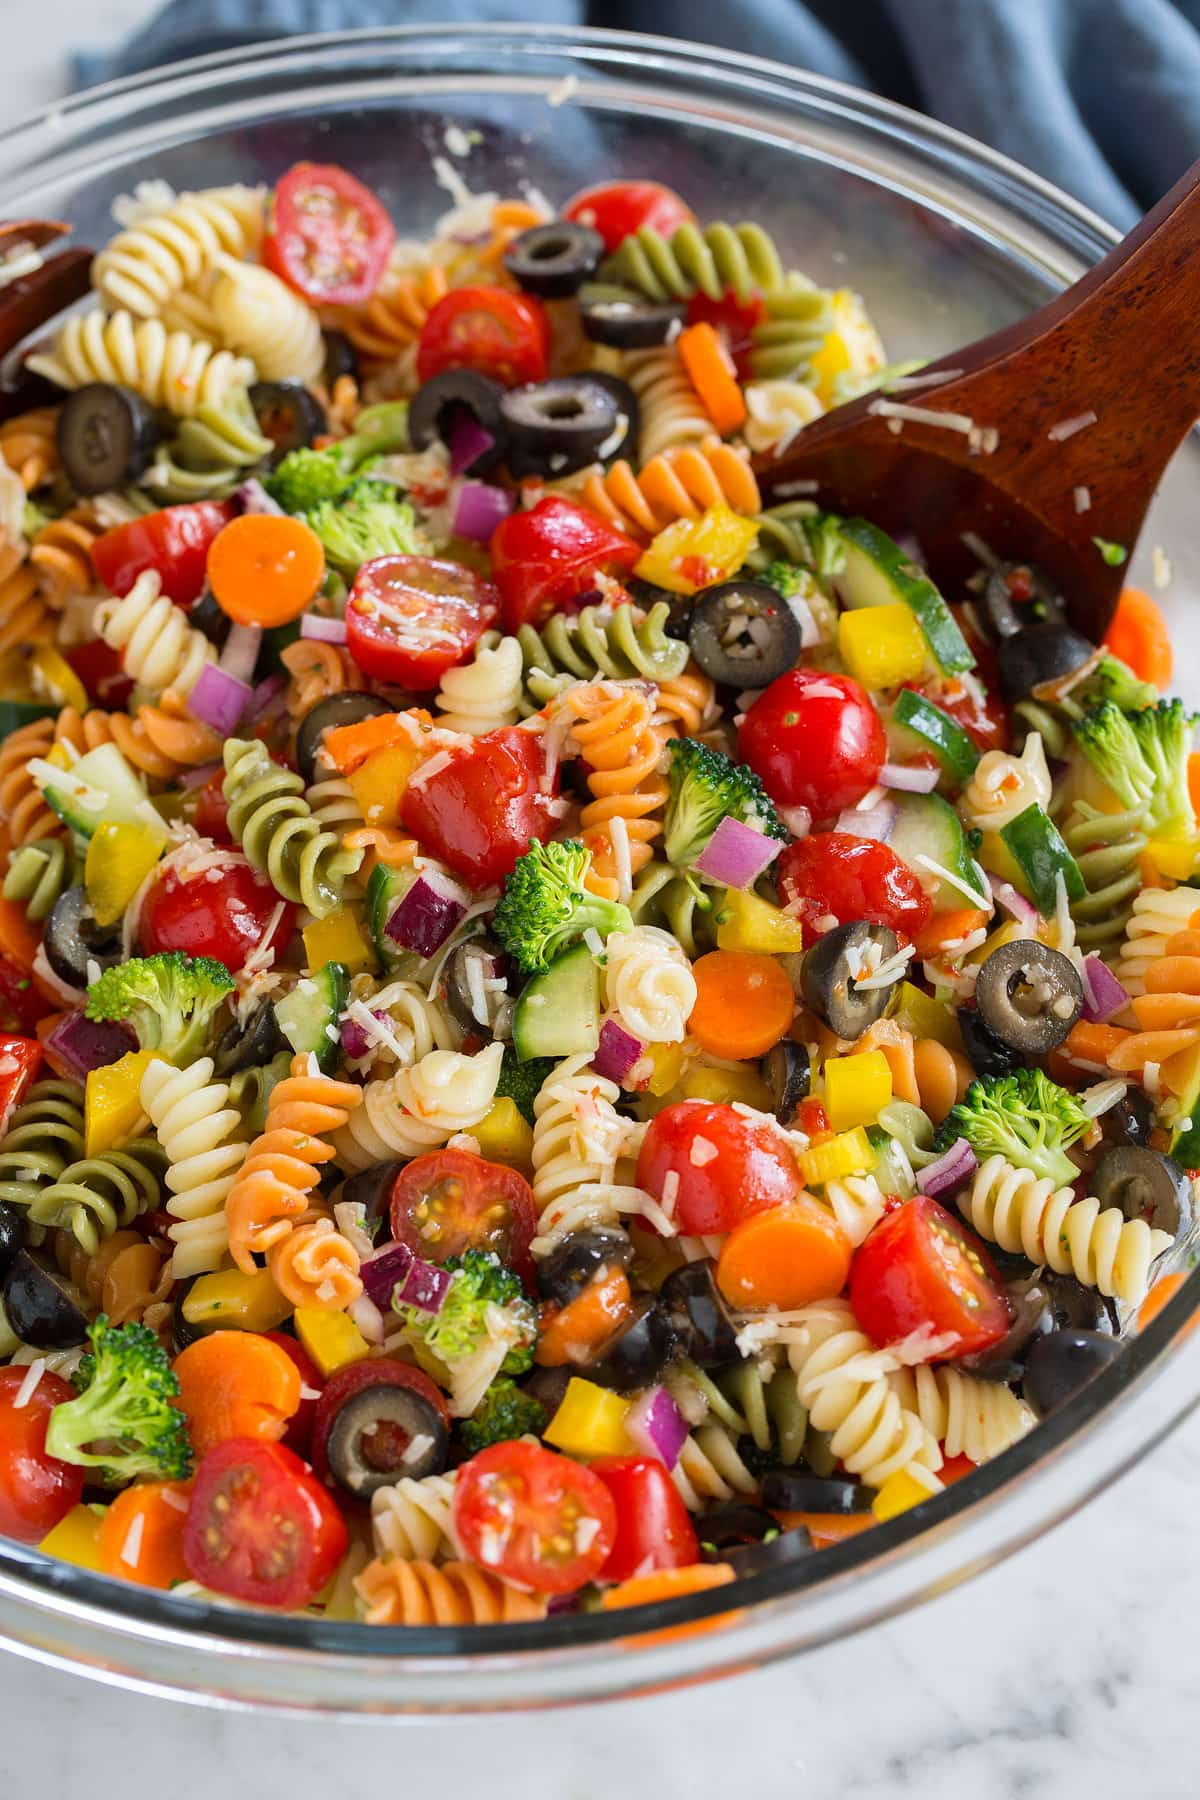 cold pasta salad in a glass bowl with wooden spoon